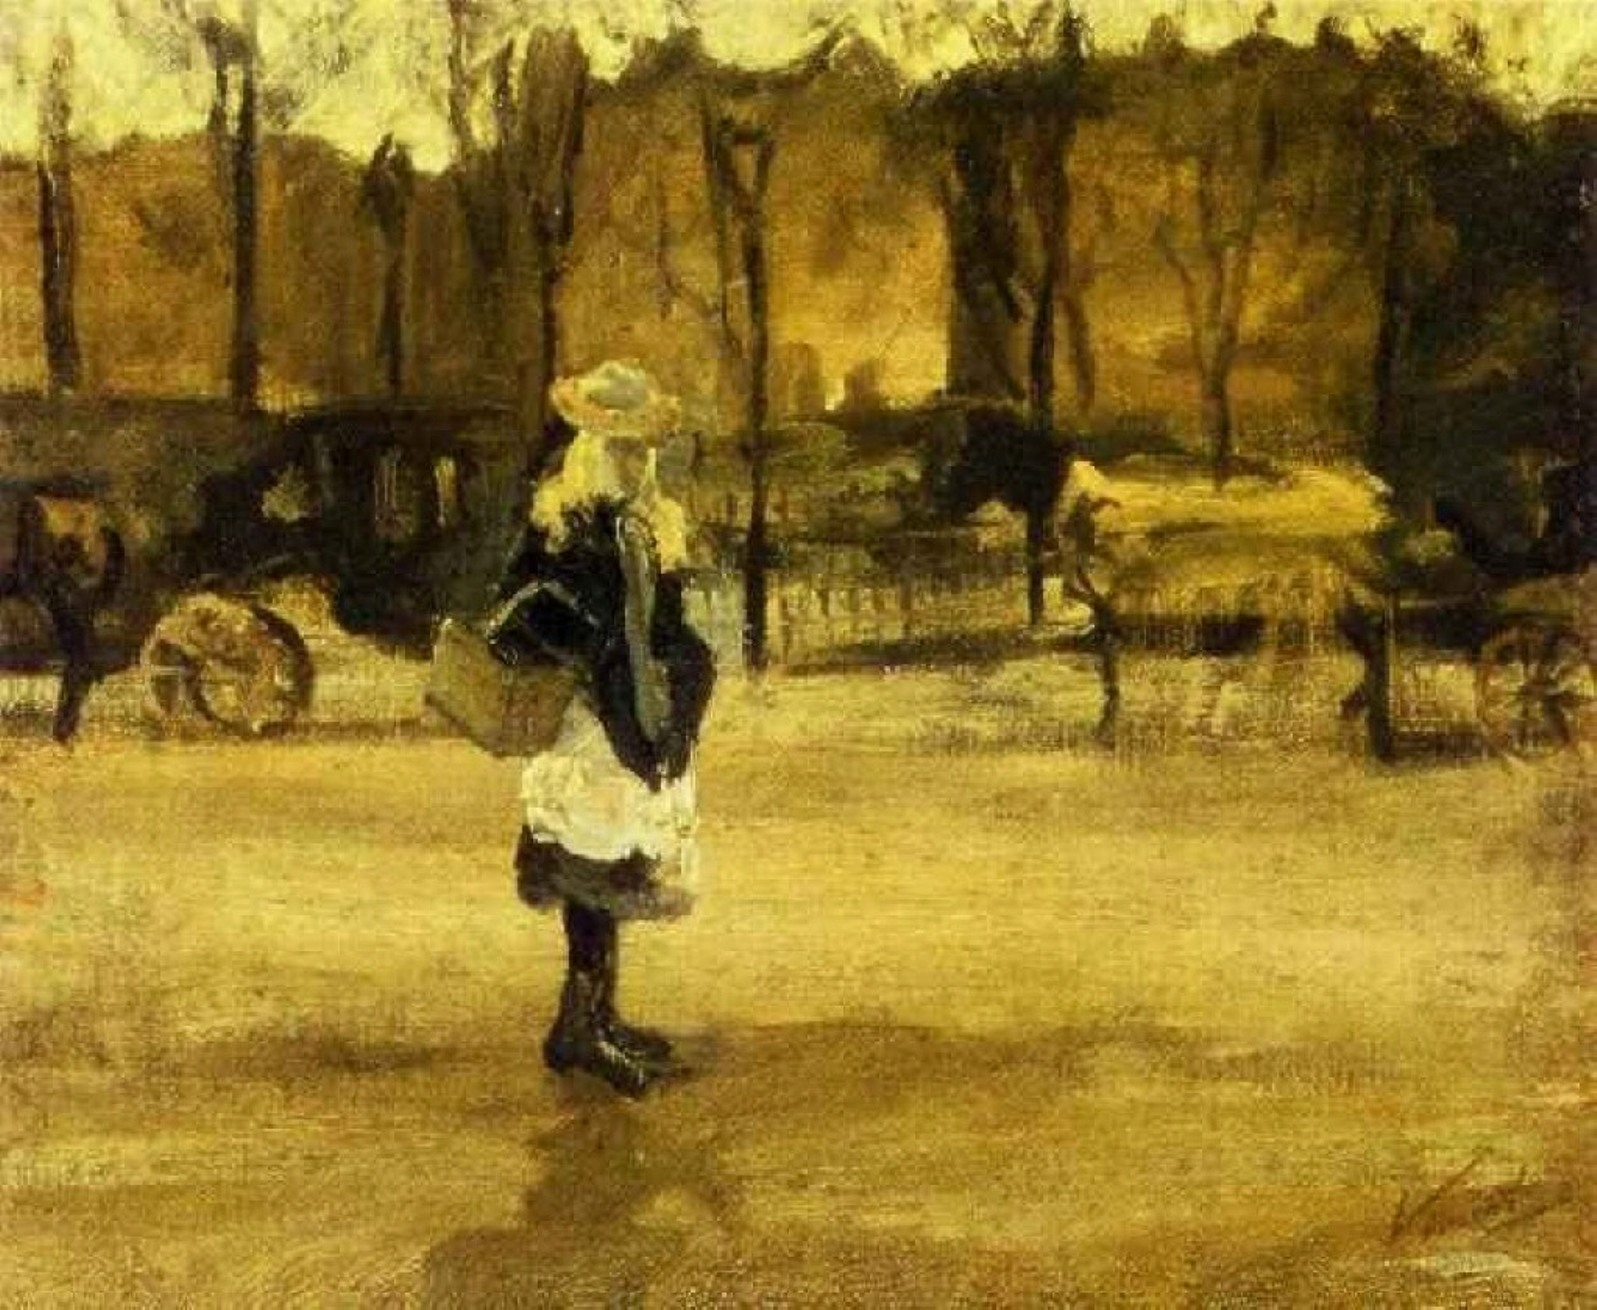 A Girl in the Street, Two Coaches in the Background by Vincent van Gogh, Alternate Brighter Image